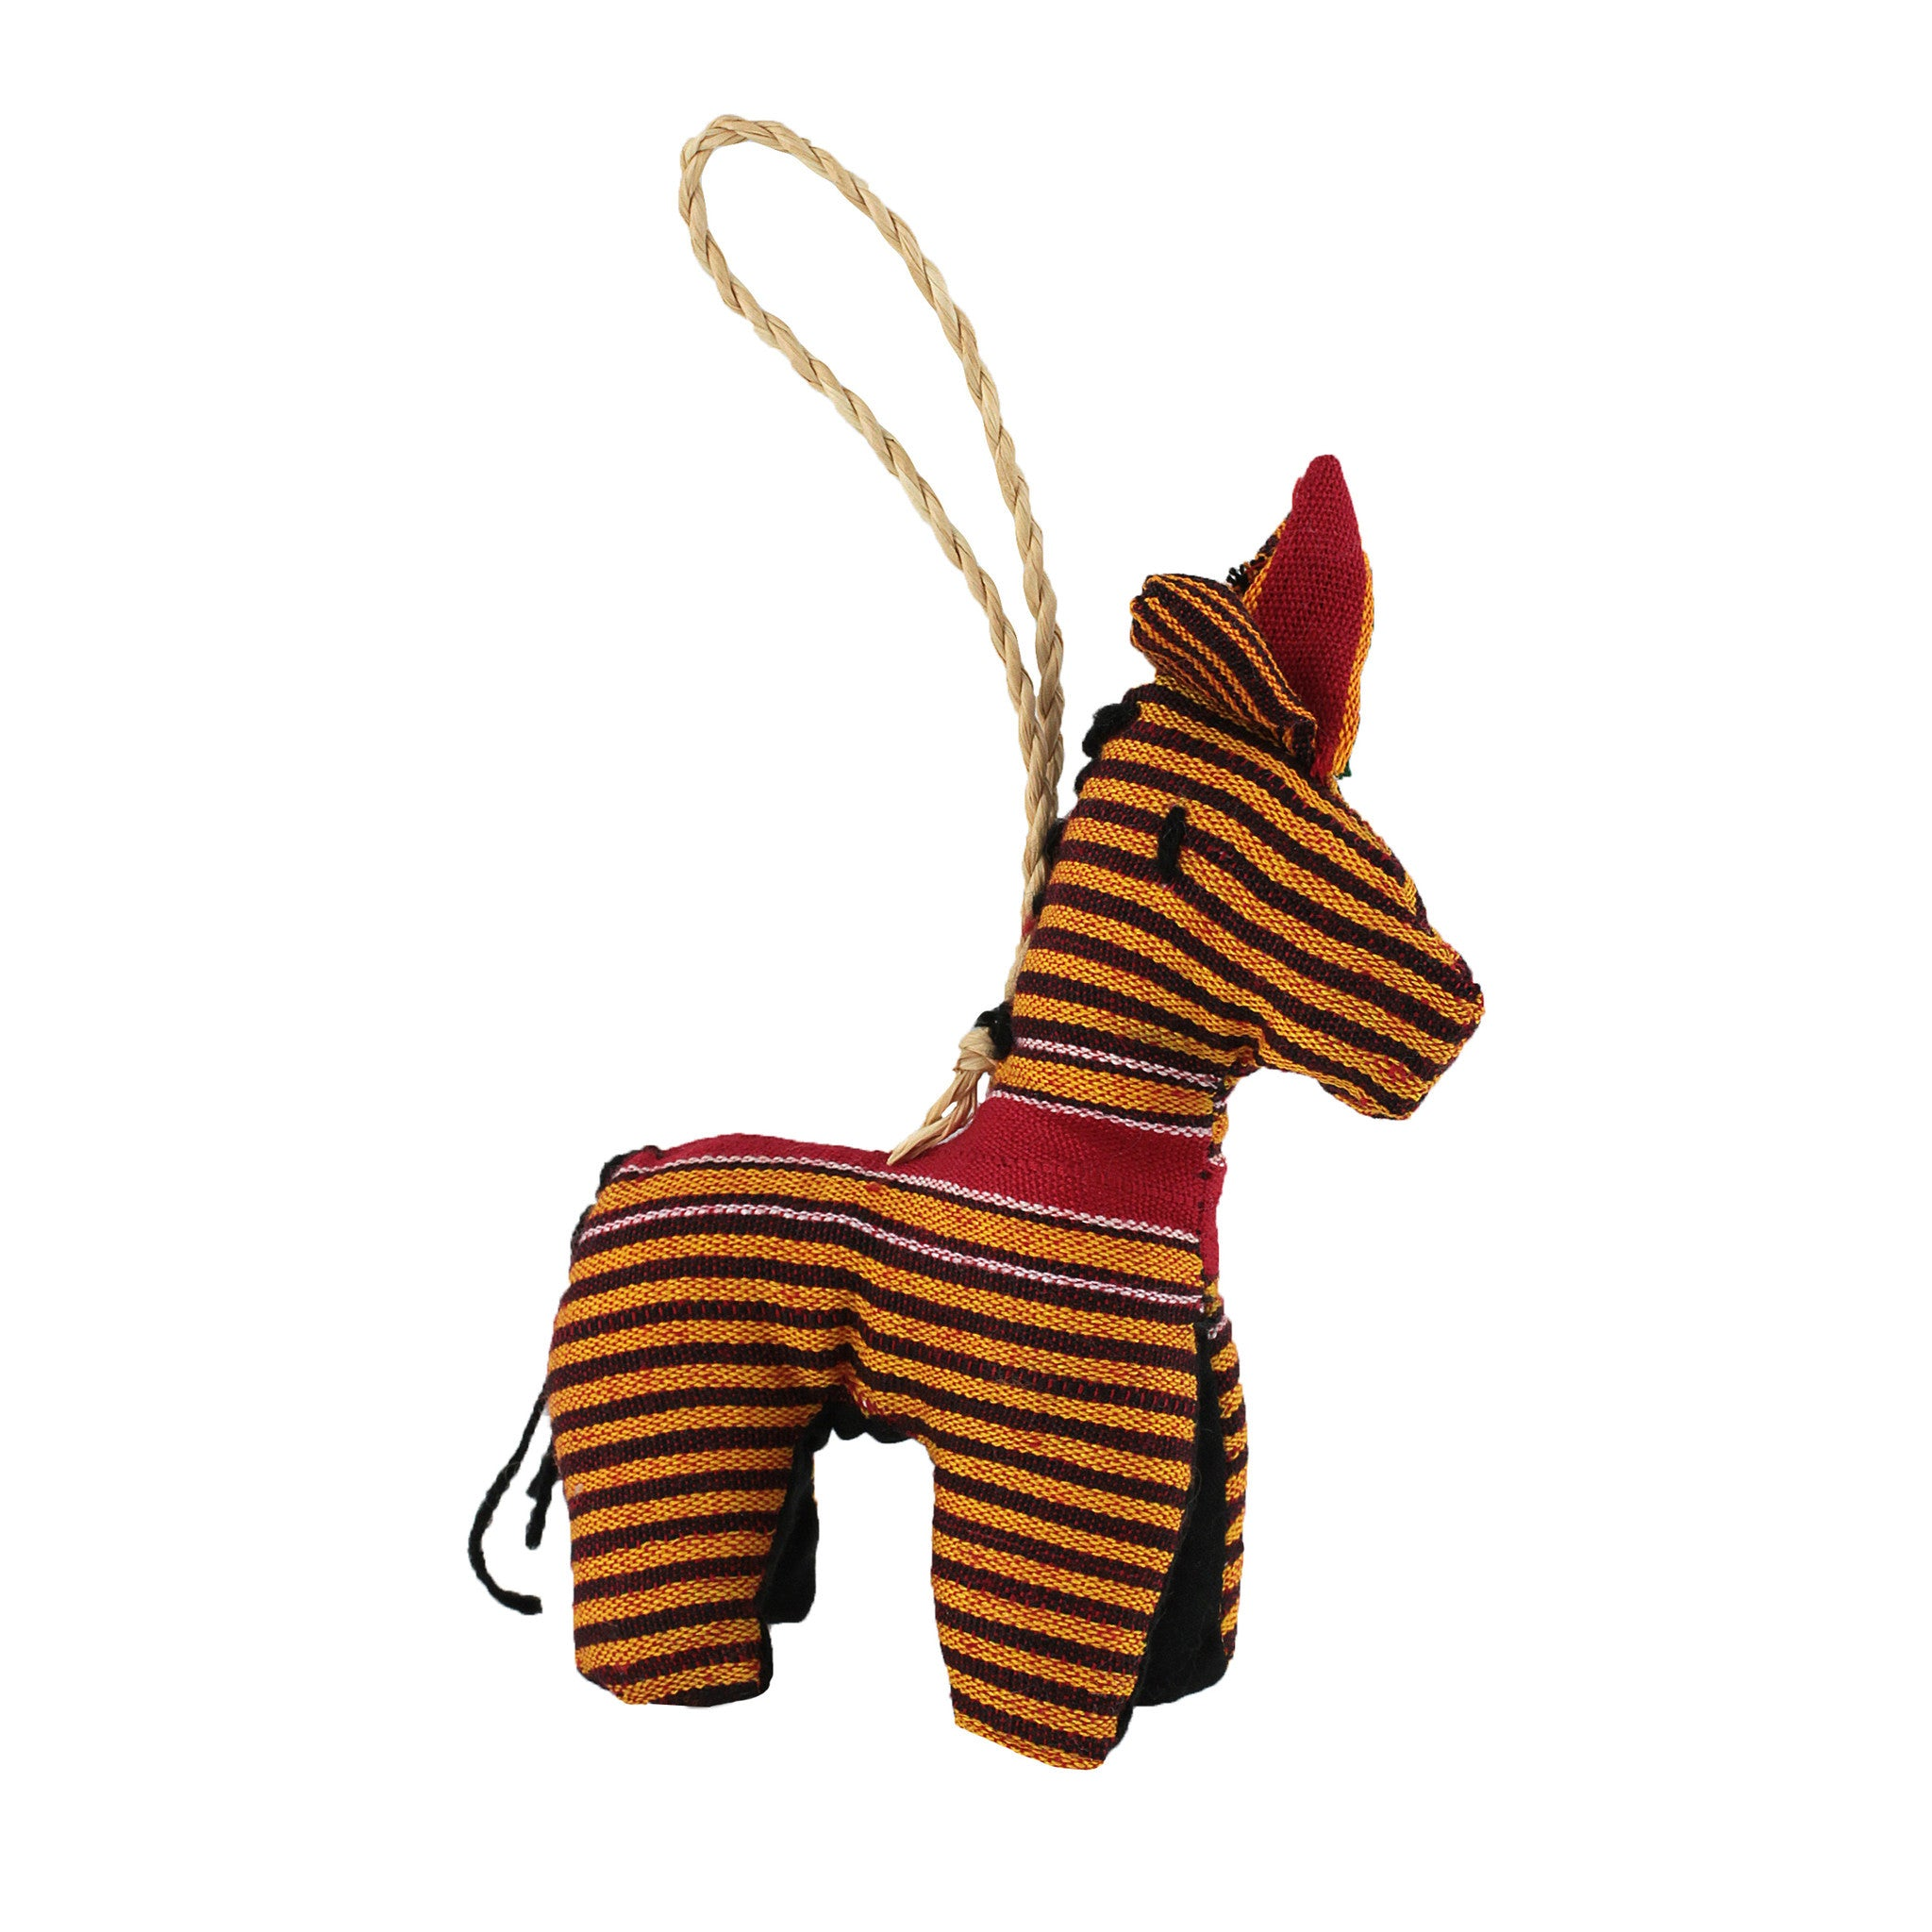 Hand Sewn Ugandan Kikoy Fabric Stuffed Zebra Christmas Ornament